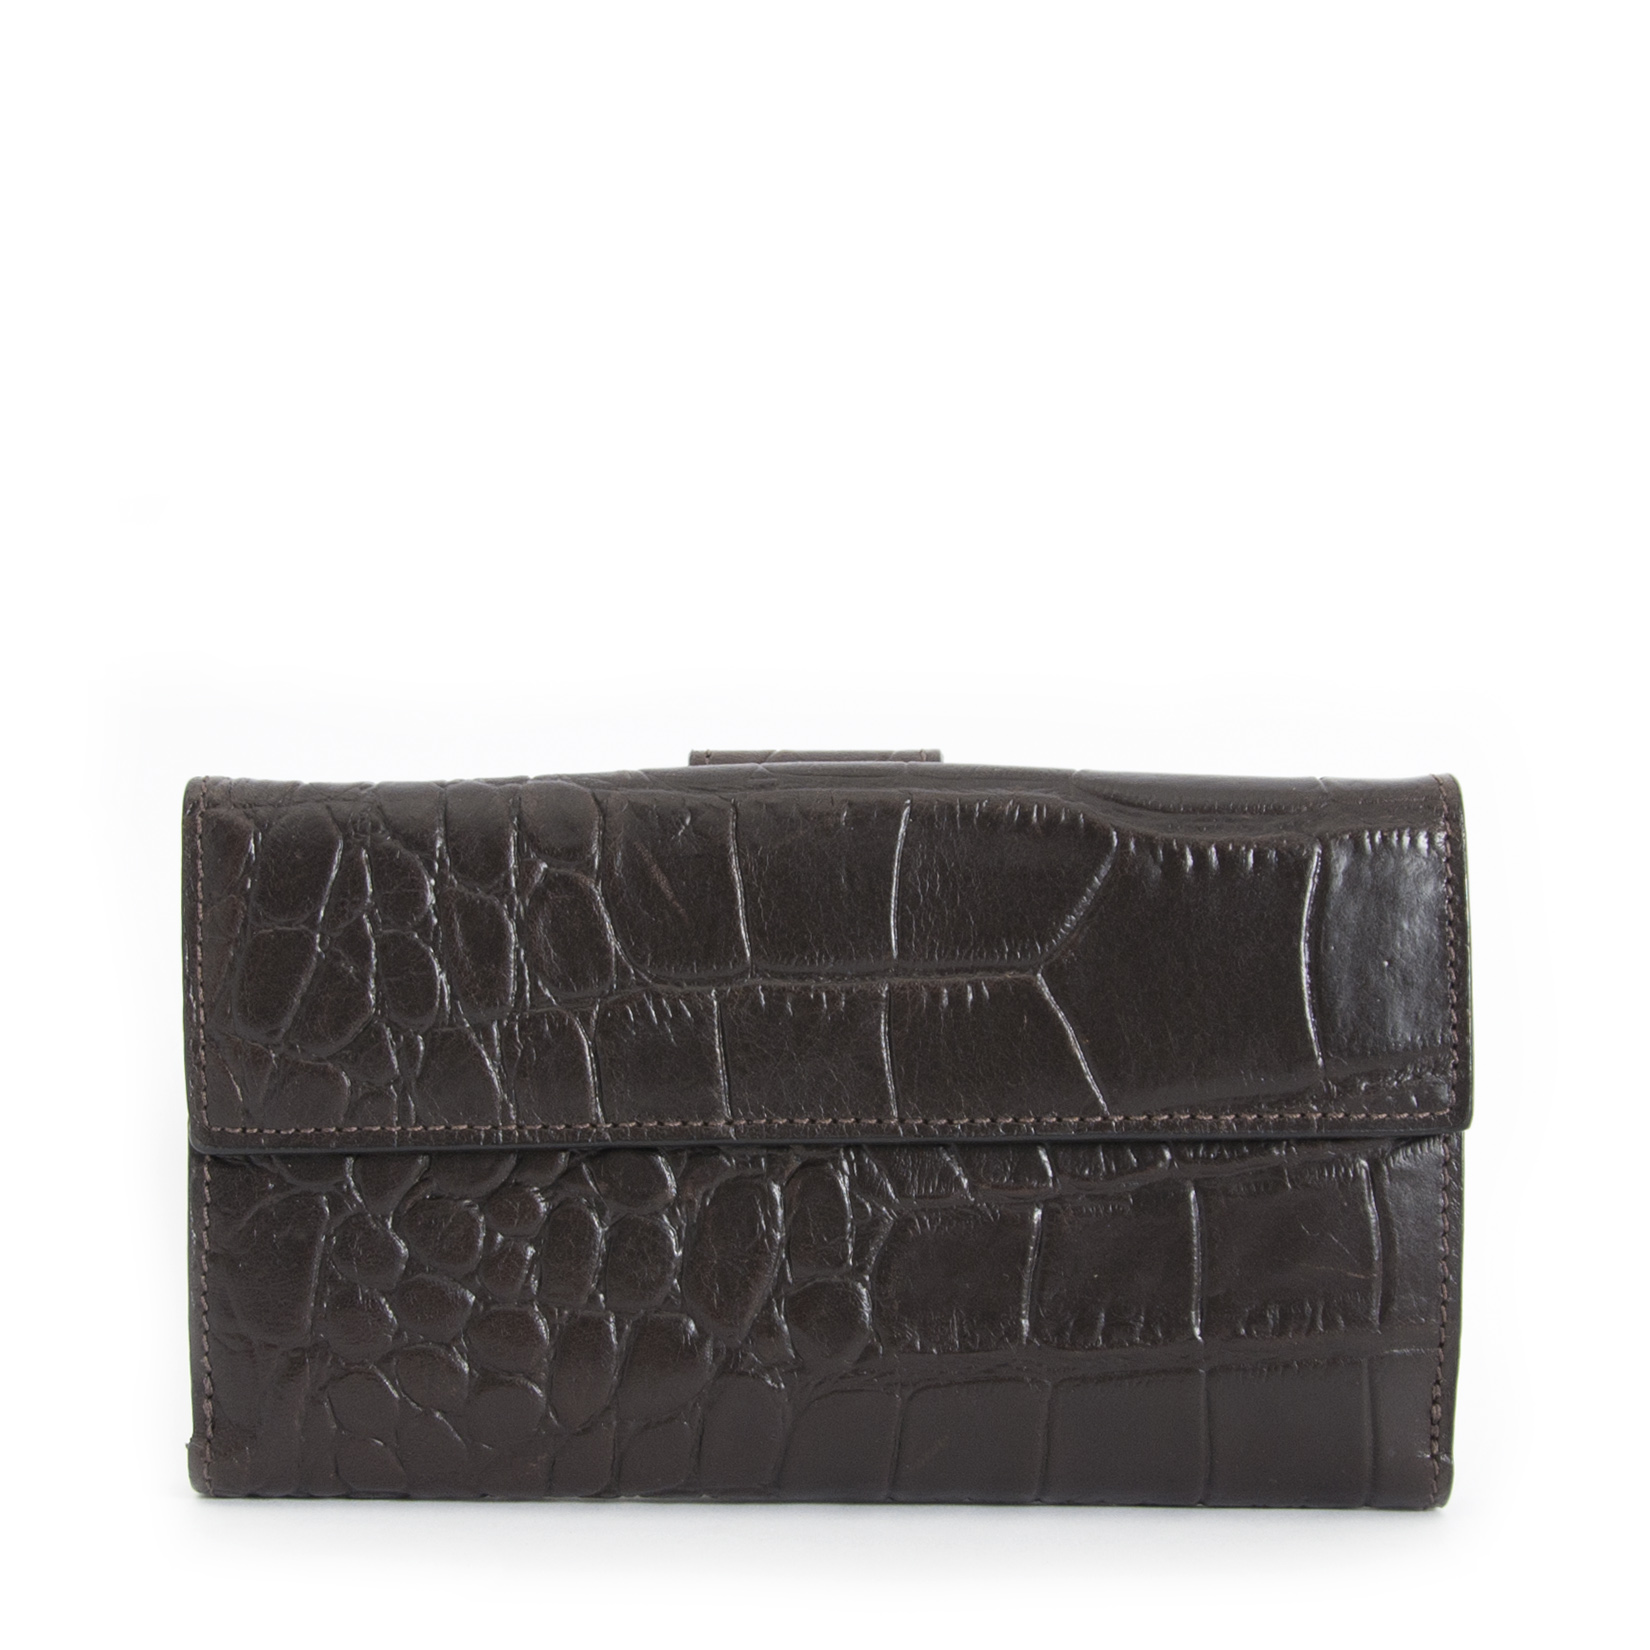 ... Mulberry Croco Embossed Brown Leather Wallet for the best price  available online 64b9407868ae4